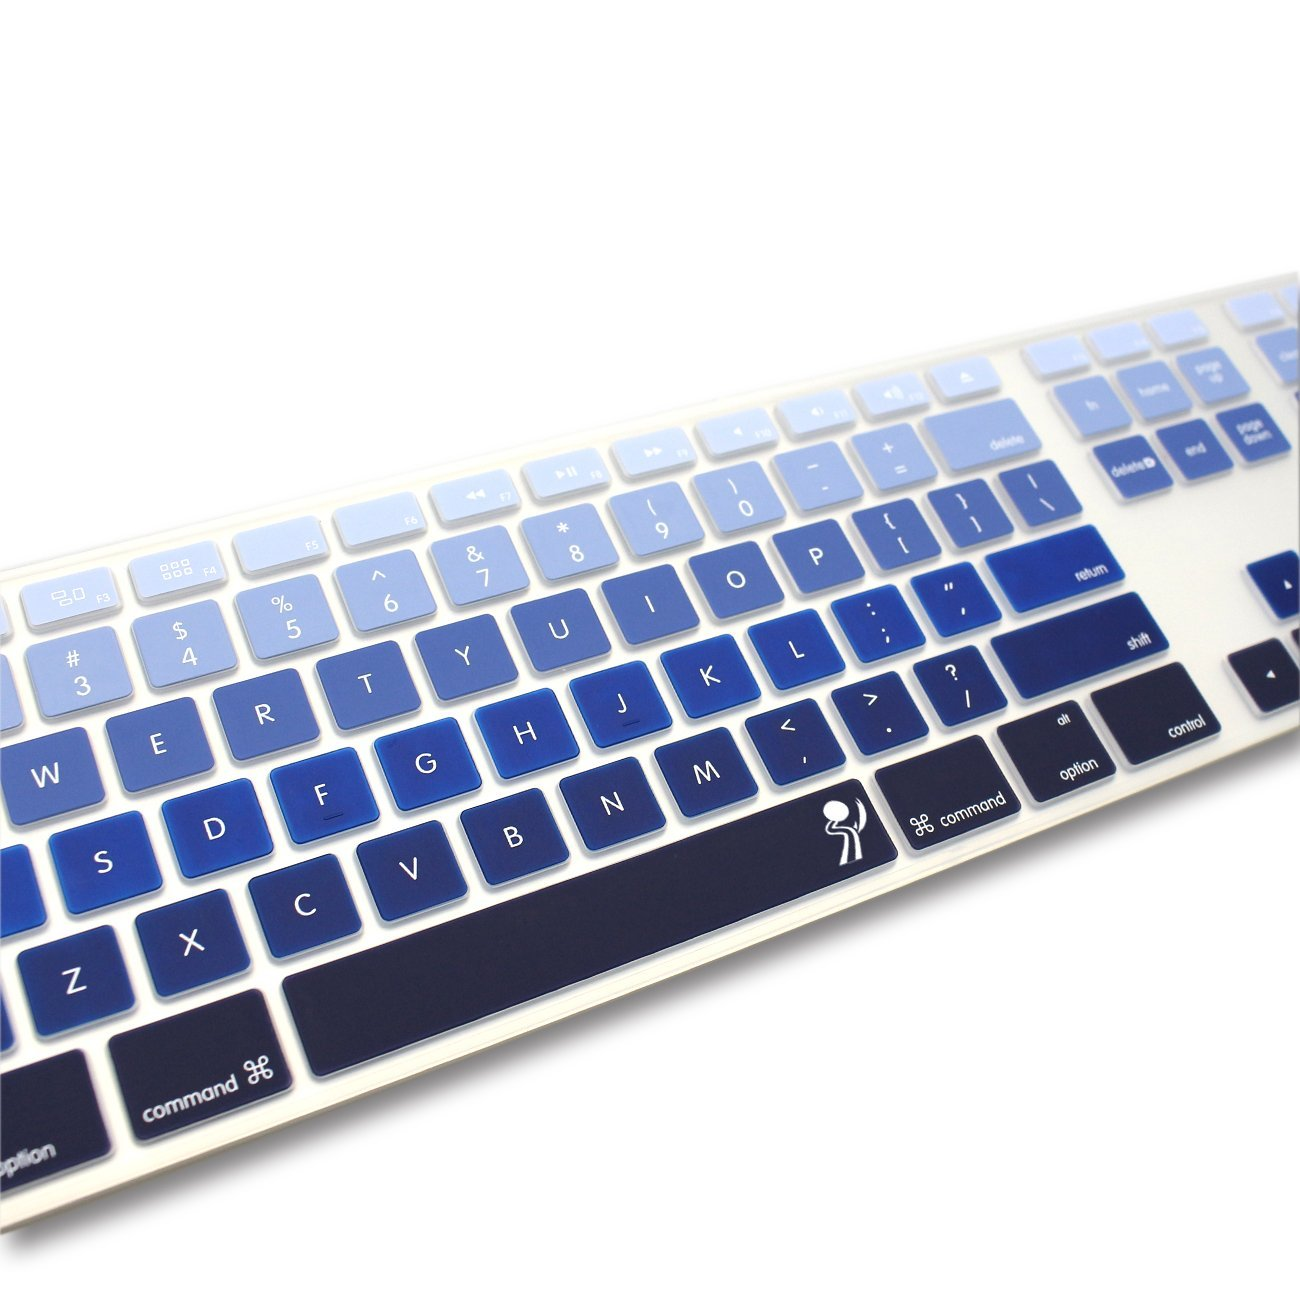 ProElife Silicone Full Size Ultra Thin keyboard Cover Skin for Apple Keyboard MB110LL//B with Numeric Keypad Wired USB for iMac Numeric Keypad, Fade in-Purple